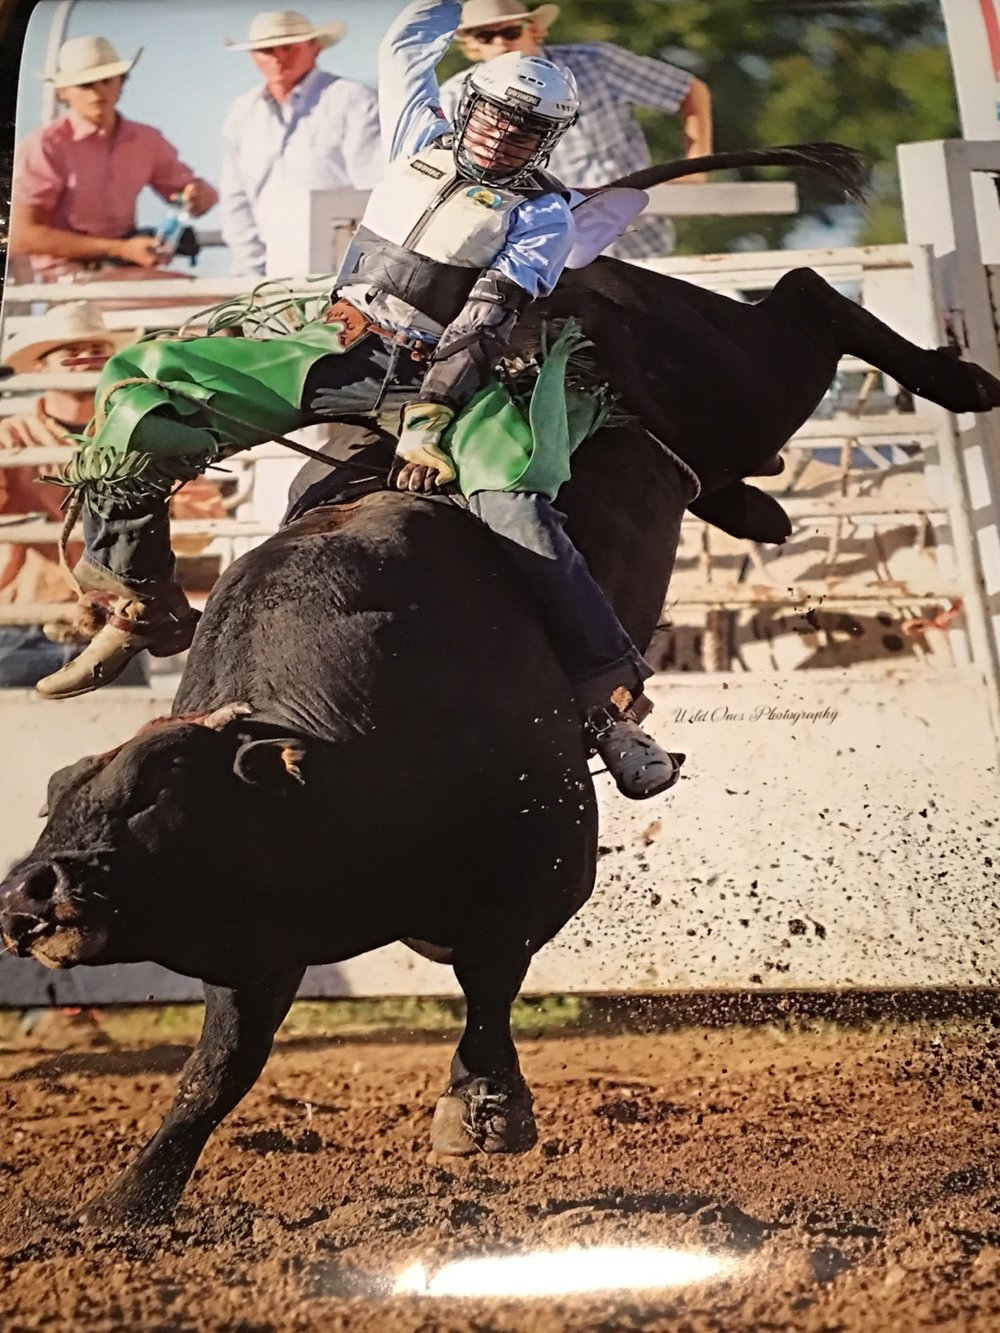 Submitted photo Platte City resident Koltin Hevalow is shown riding a bull earlier this year in Osceola, Mo. He is set to compete this upcoming week in the National High School Finals Rodeo in Wyoming.